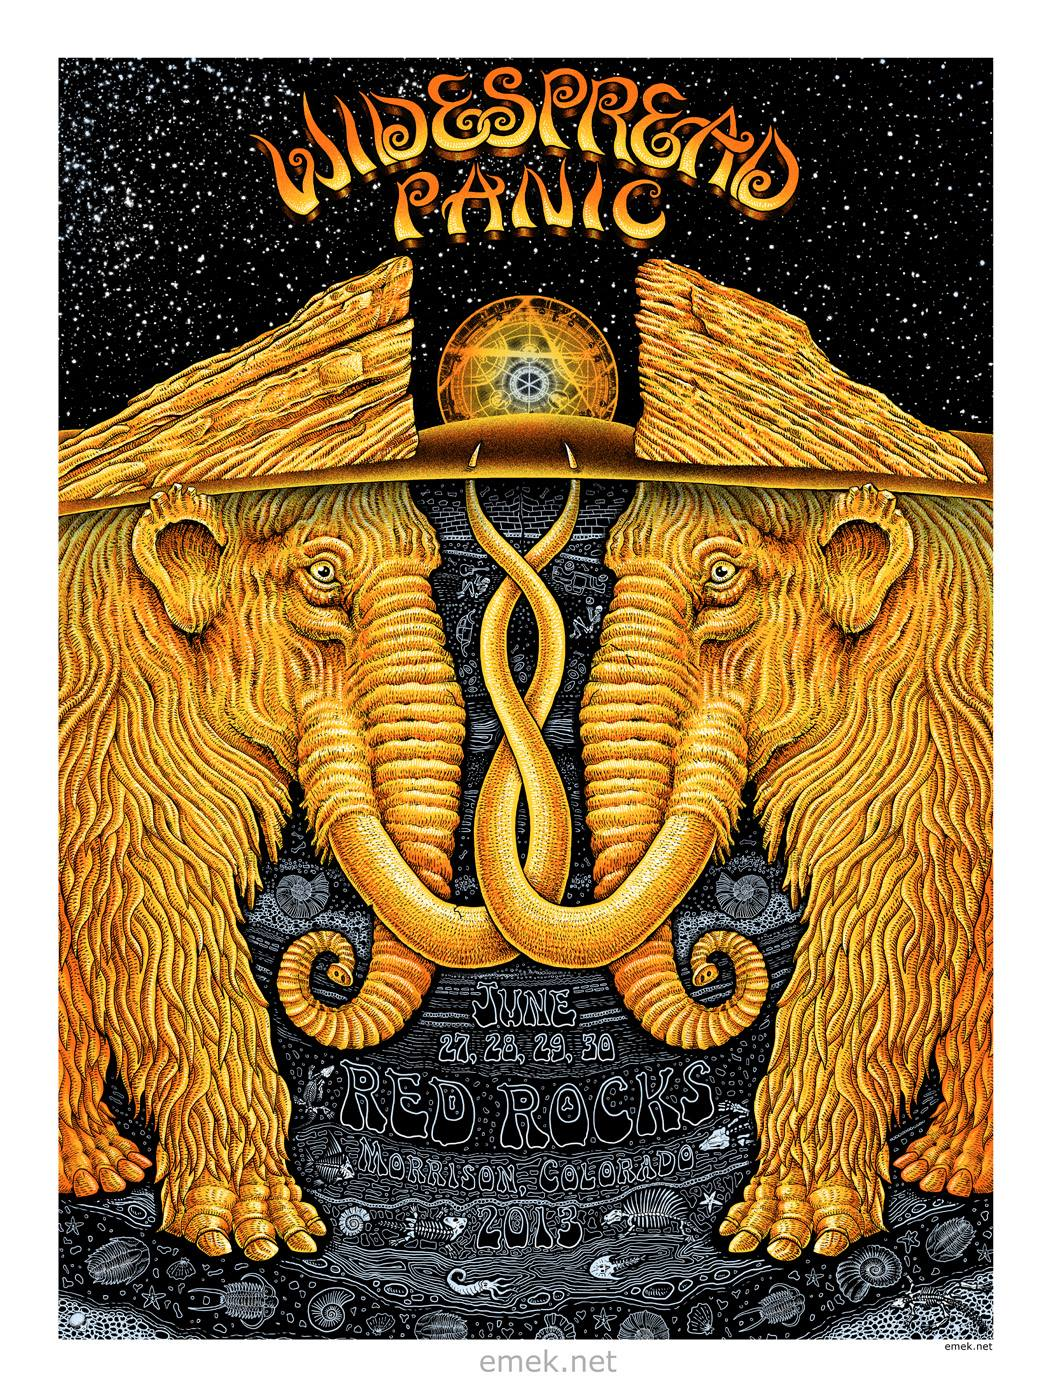 Inside The Rock Poster Frame Blog Tonight S Widespread